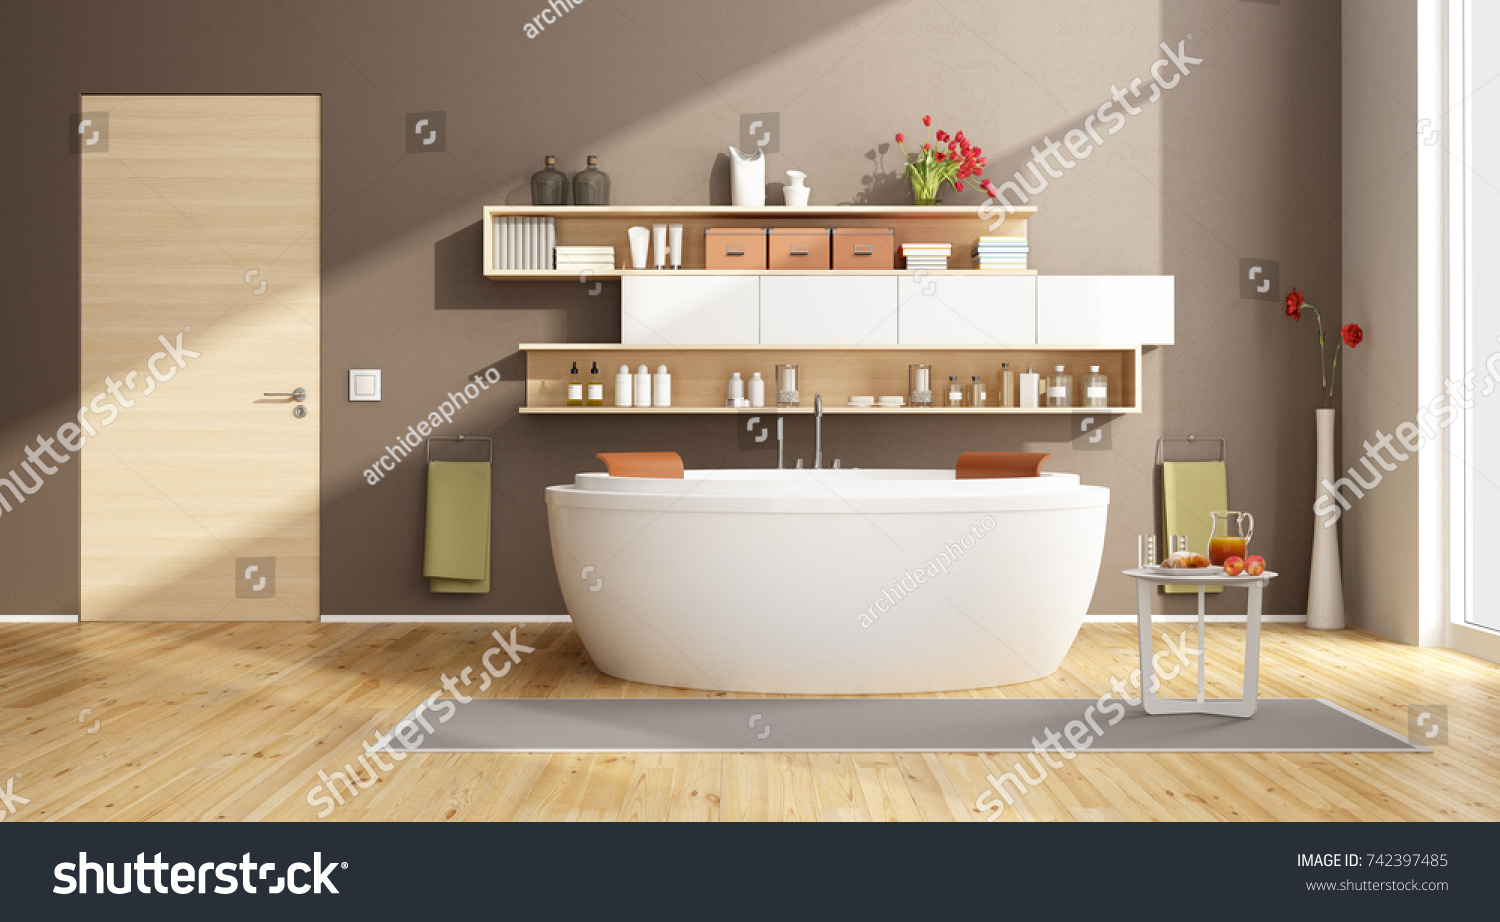 Moder Bathroom Round Bathtub Shelves On Stock Illustration 742397485 ...